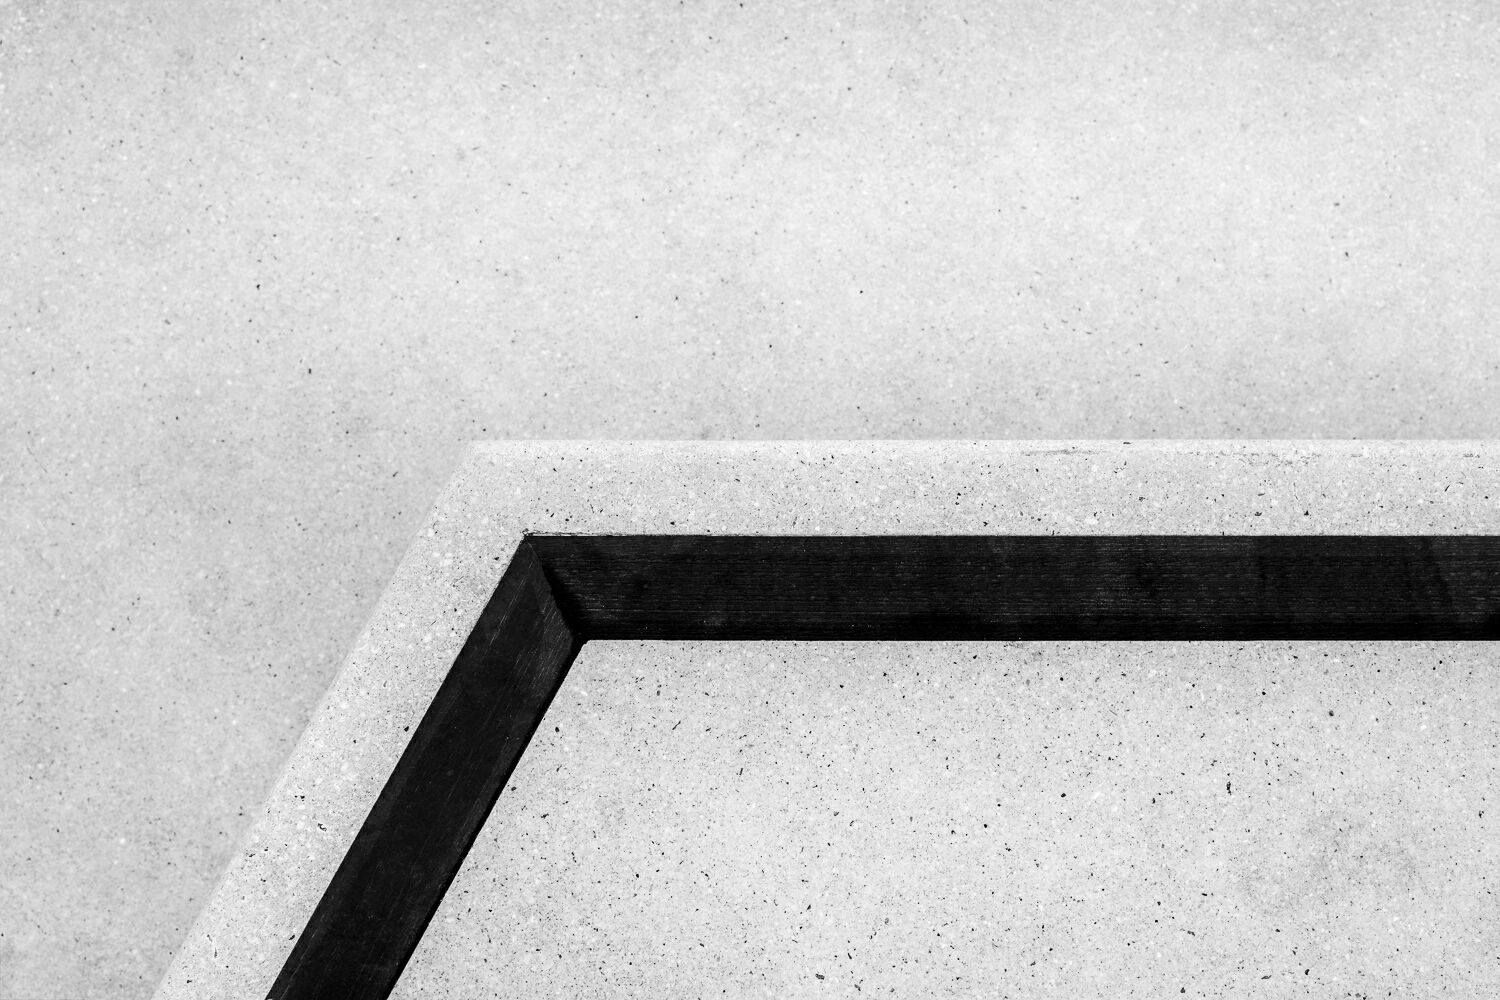 A simple shot, focussing on angles and stripe on stair